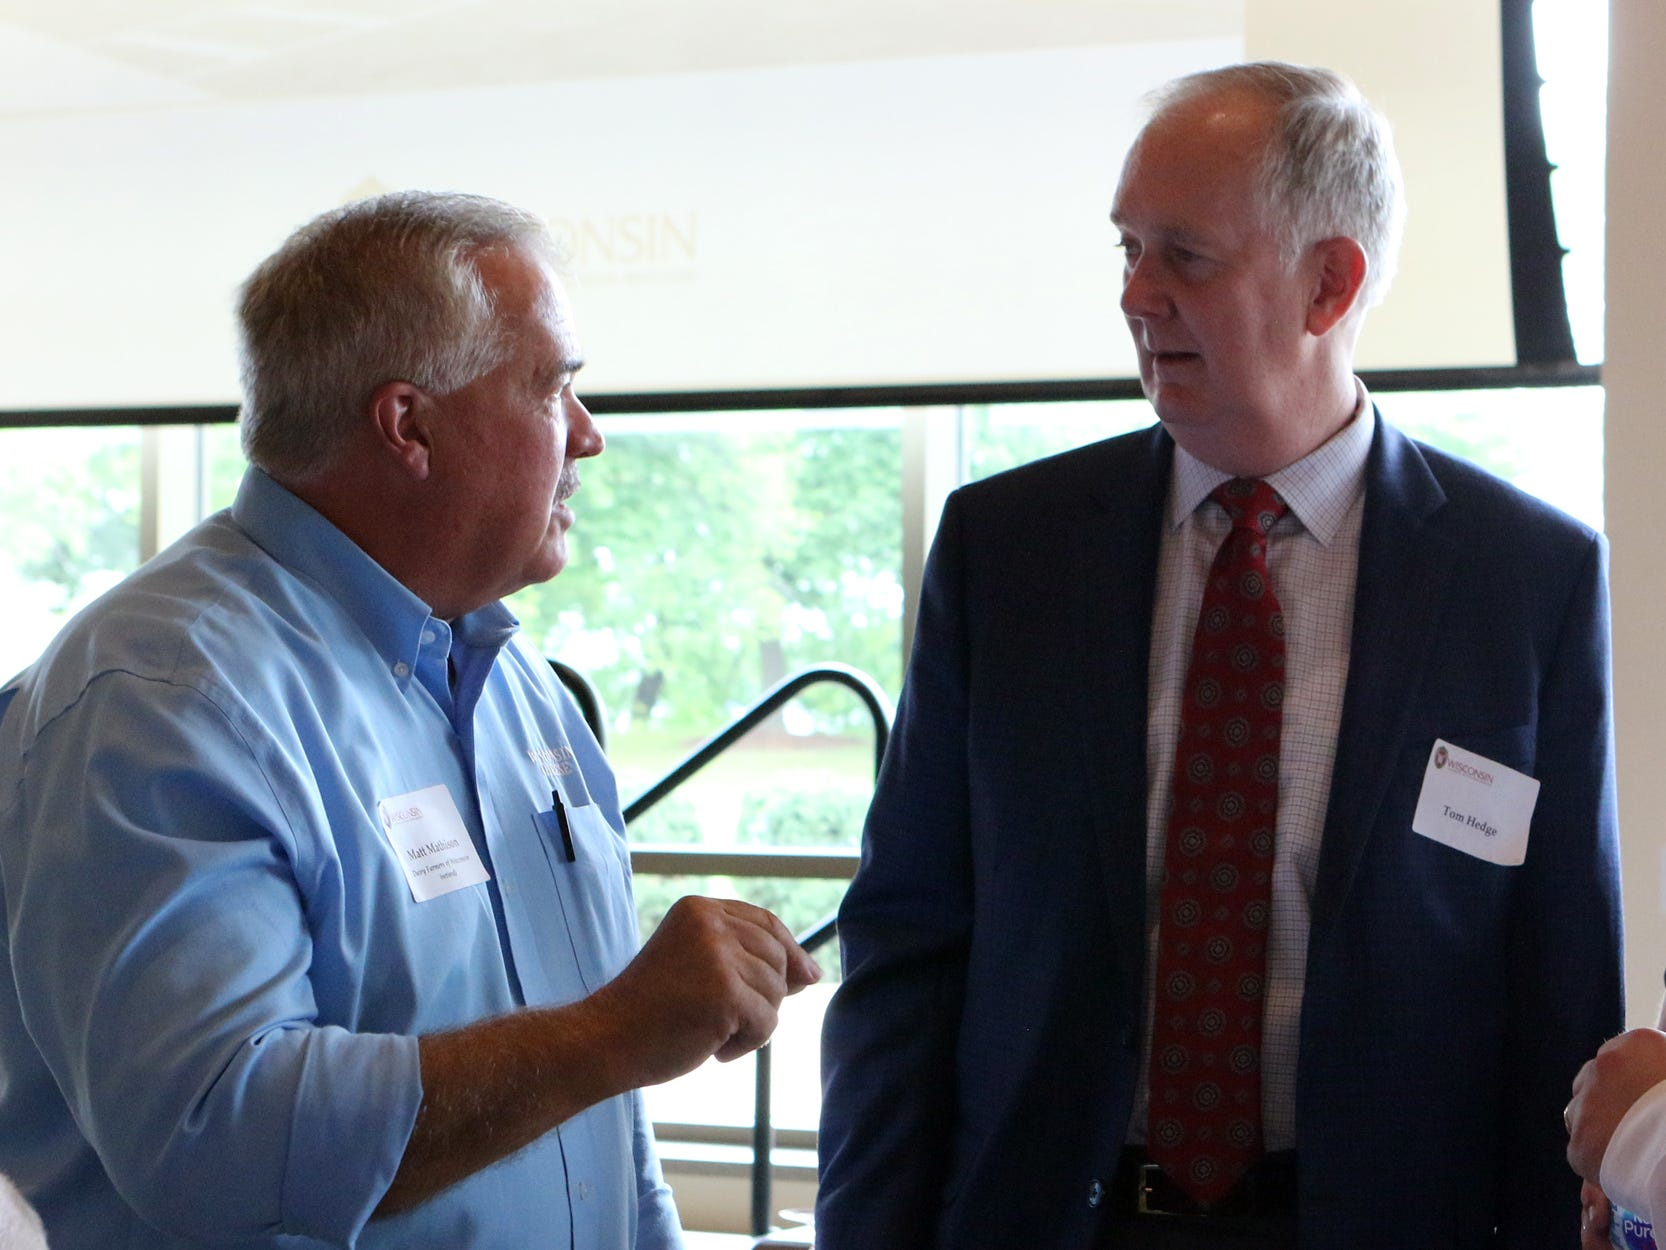 Matt Mathison (left), of Dairy Farmers of Wisconsin (retired) talks with Tom Hedge, senior vice president of Foth Production Solutions, LLC, during a celebration marking the launch of a $46 million construction and renovation project for UW-Madison's Babcock Hall Dairy Plant and Center for Dairy Research on Sept. 7.